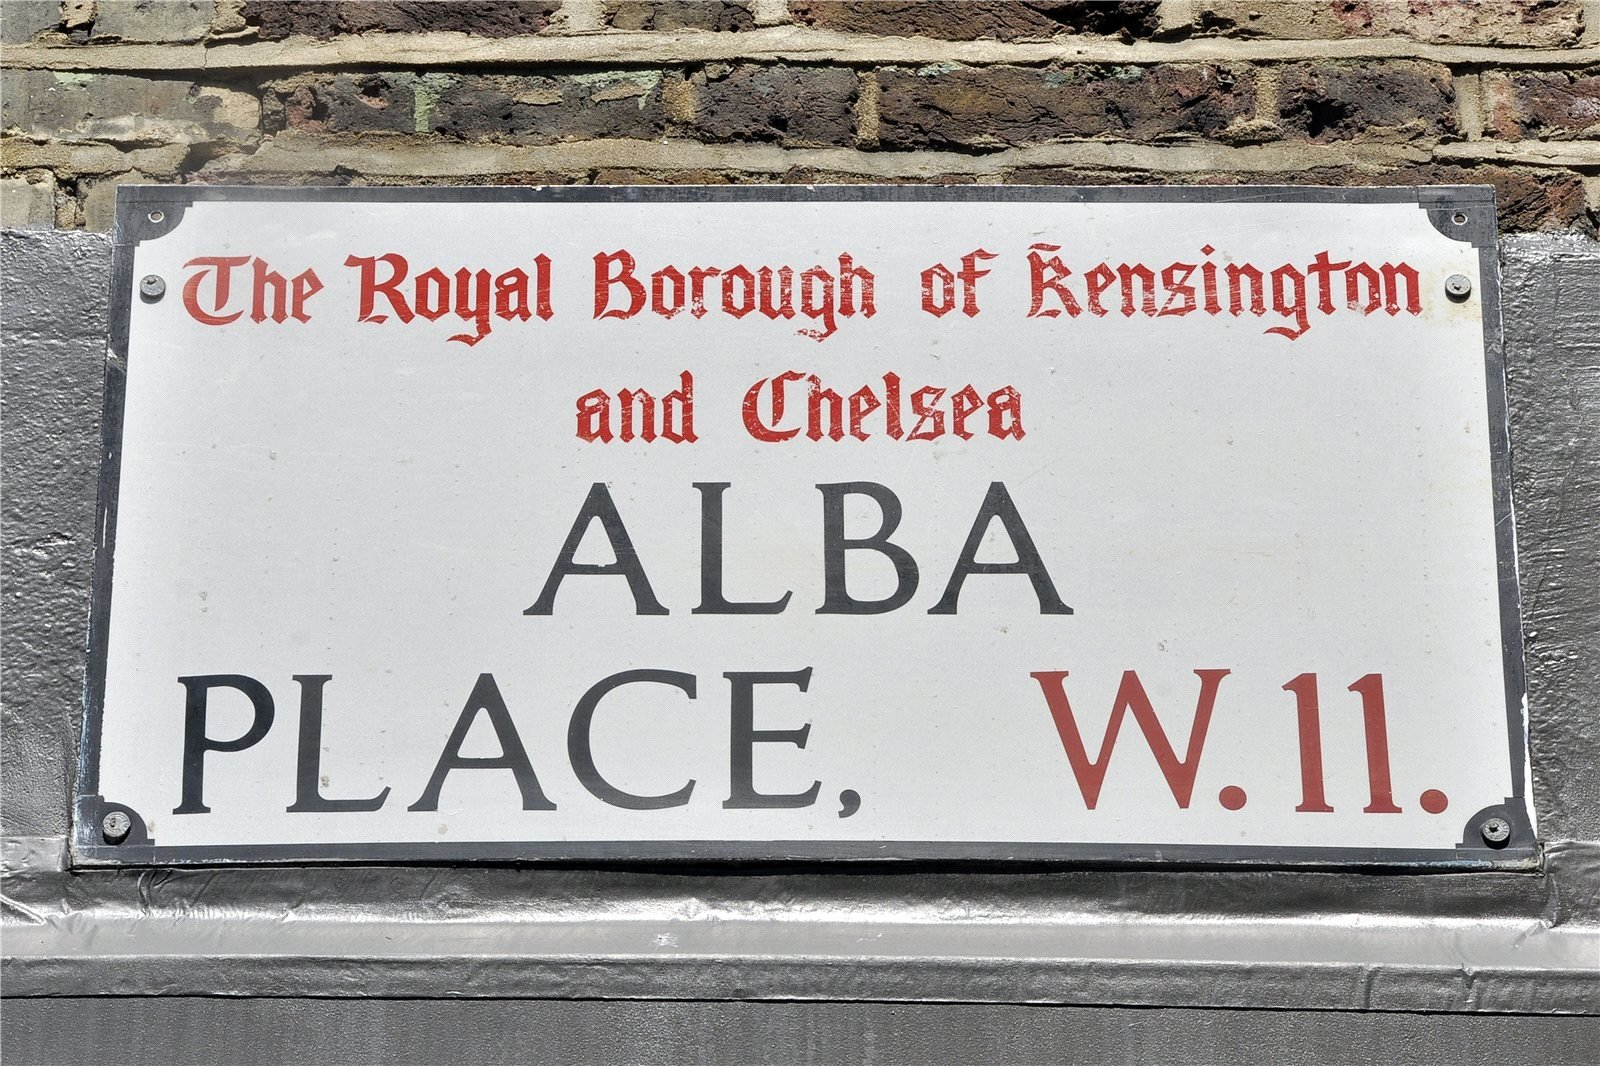 Alba Place, Portobello, Notting Hill, W11-3